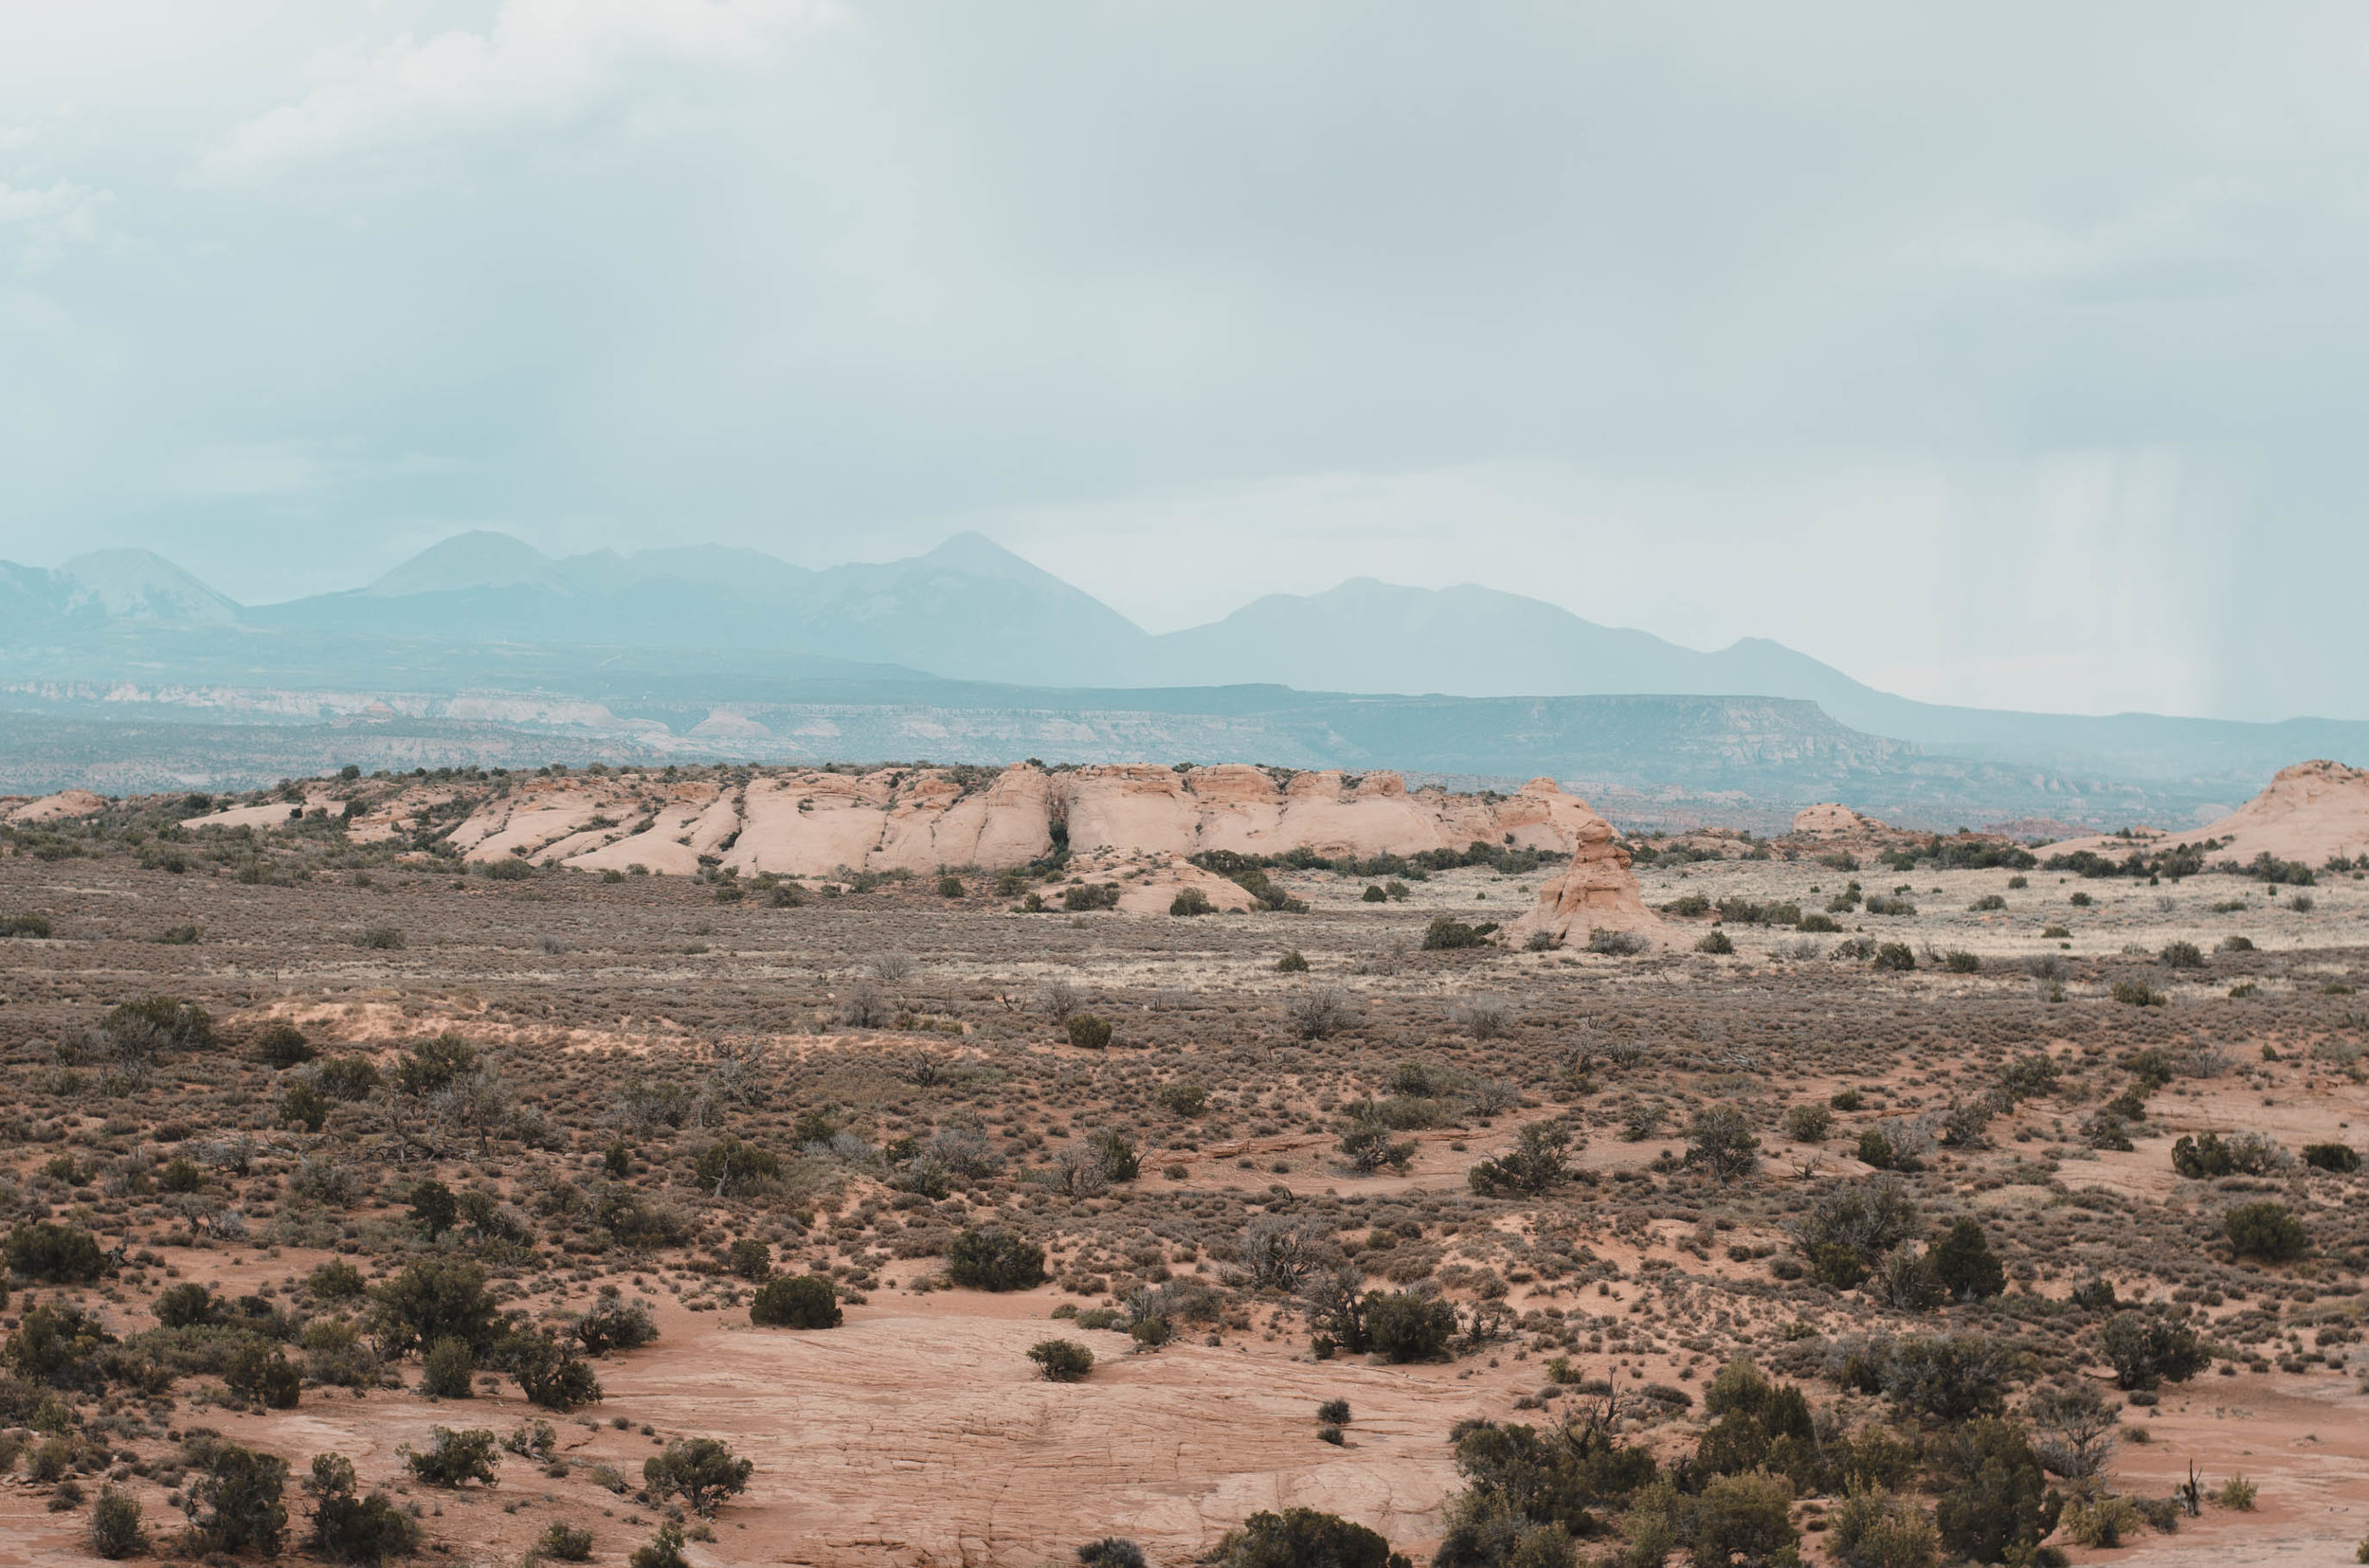 Arches National Park was our first major stop on our Utah road trip